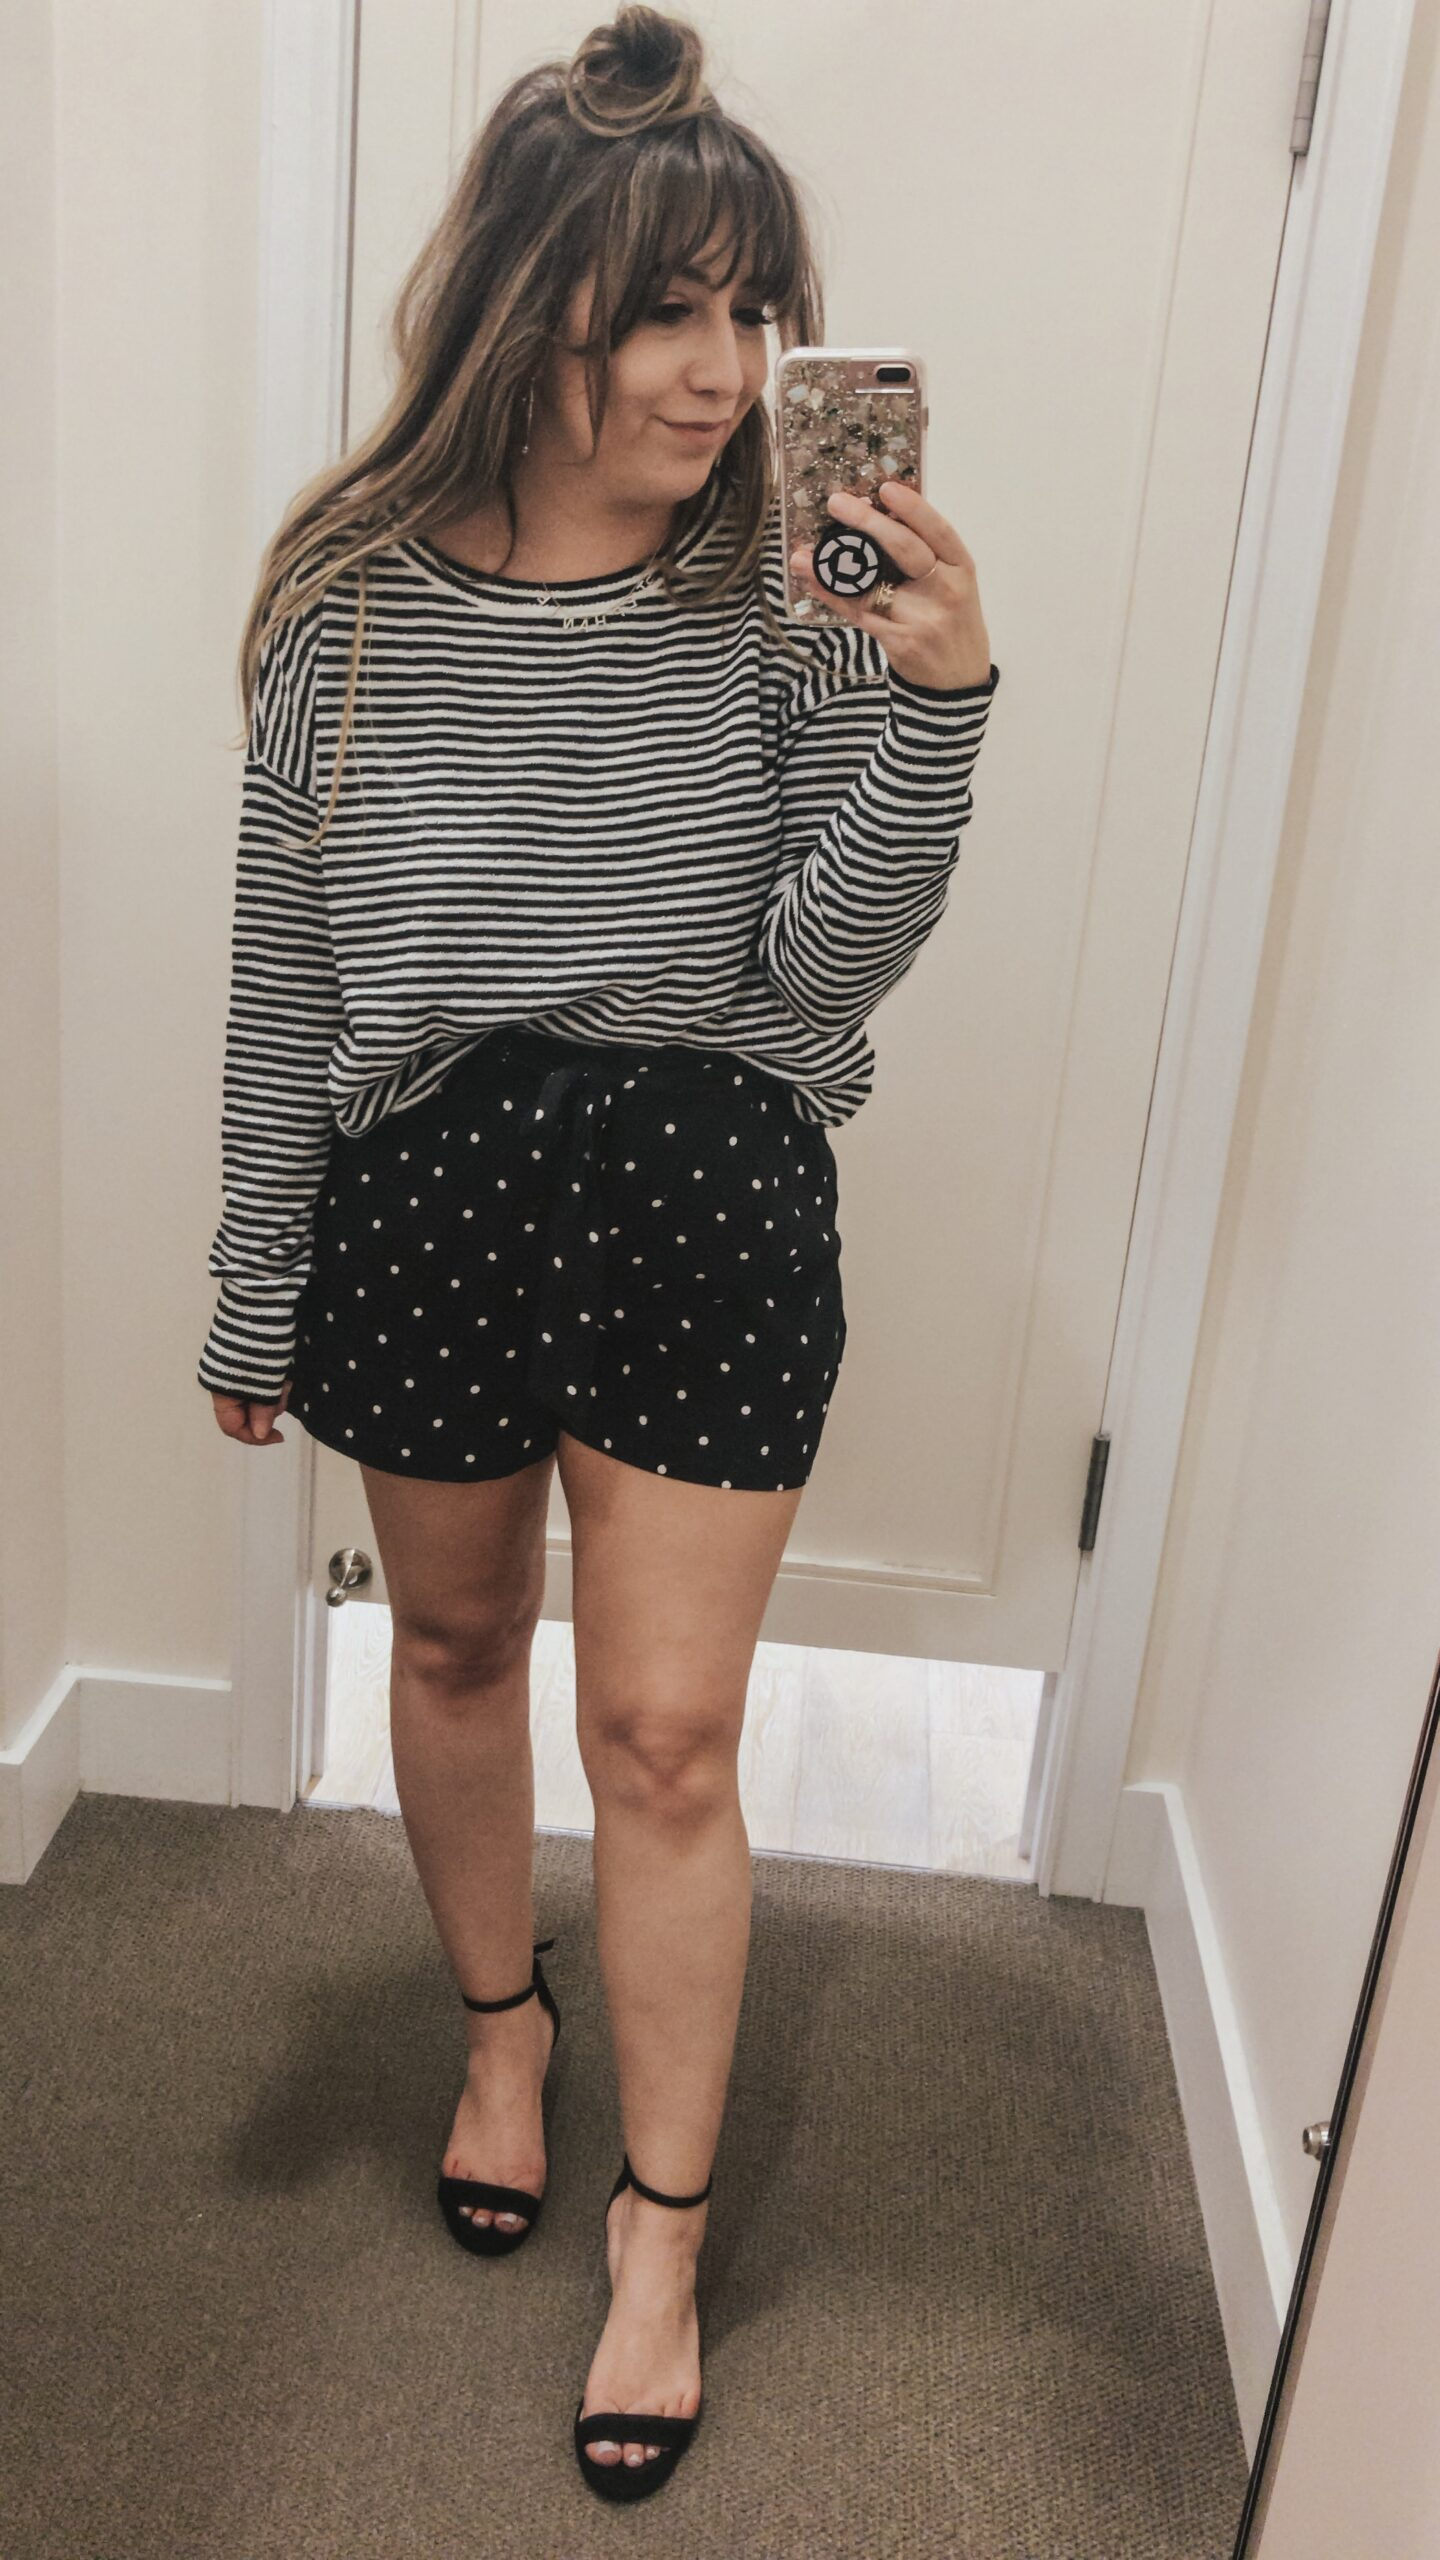 LOFT Spring - striped sweater and polka dot shorts